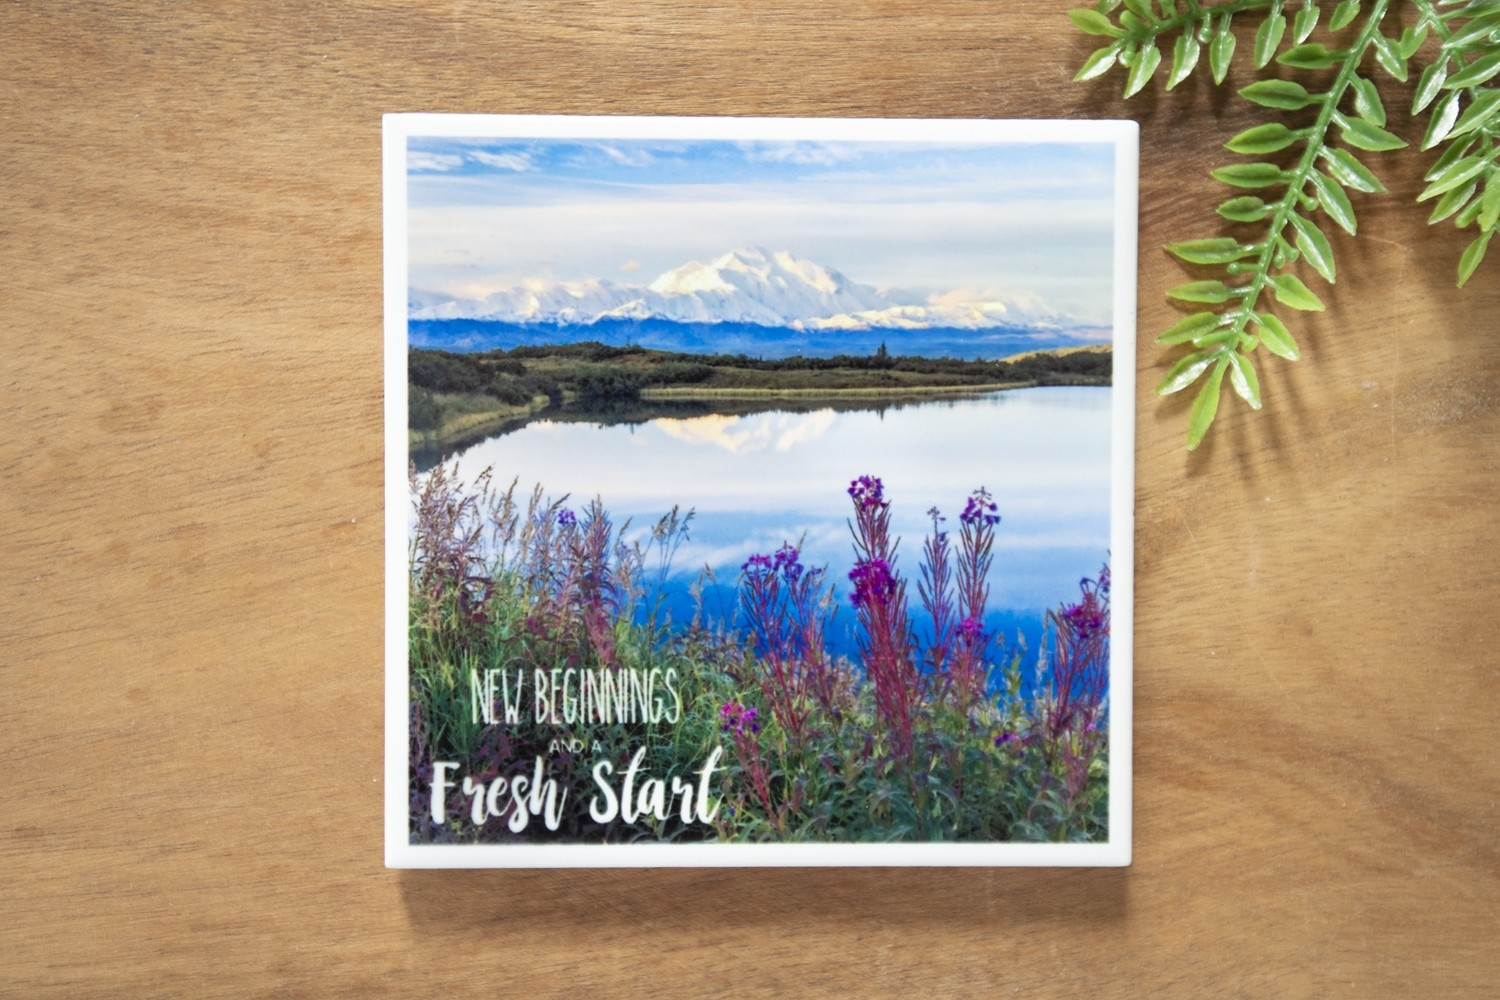 New Beginnings And A Fresh Start-Nature Photo Coaster